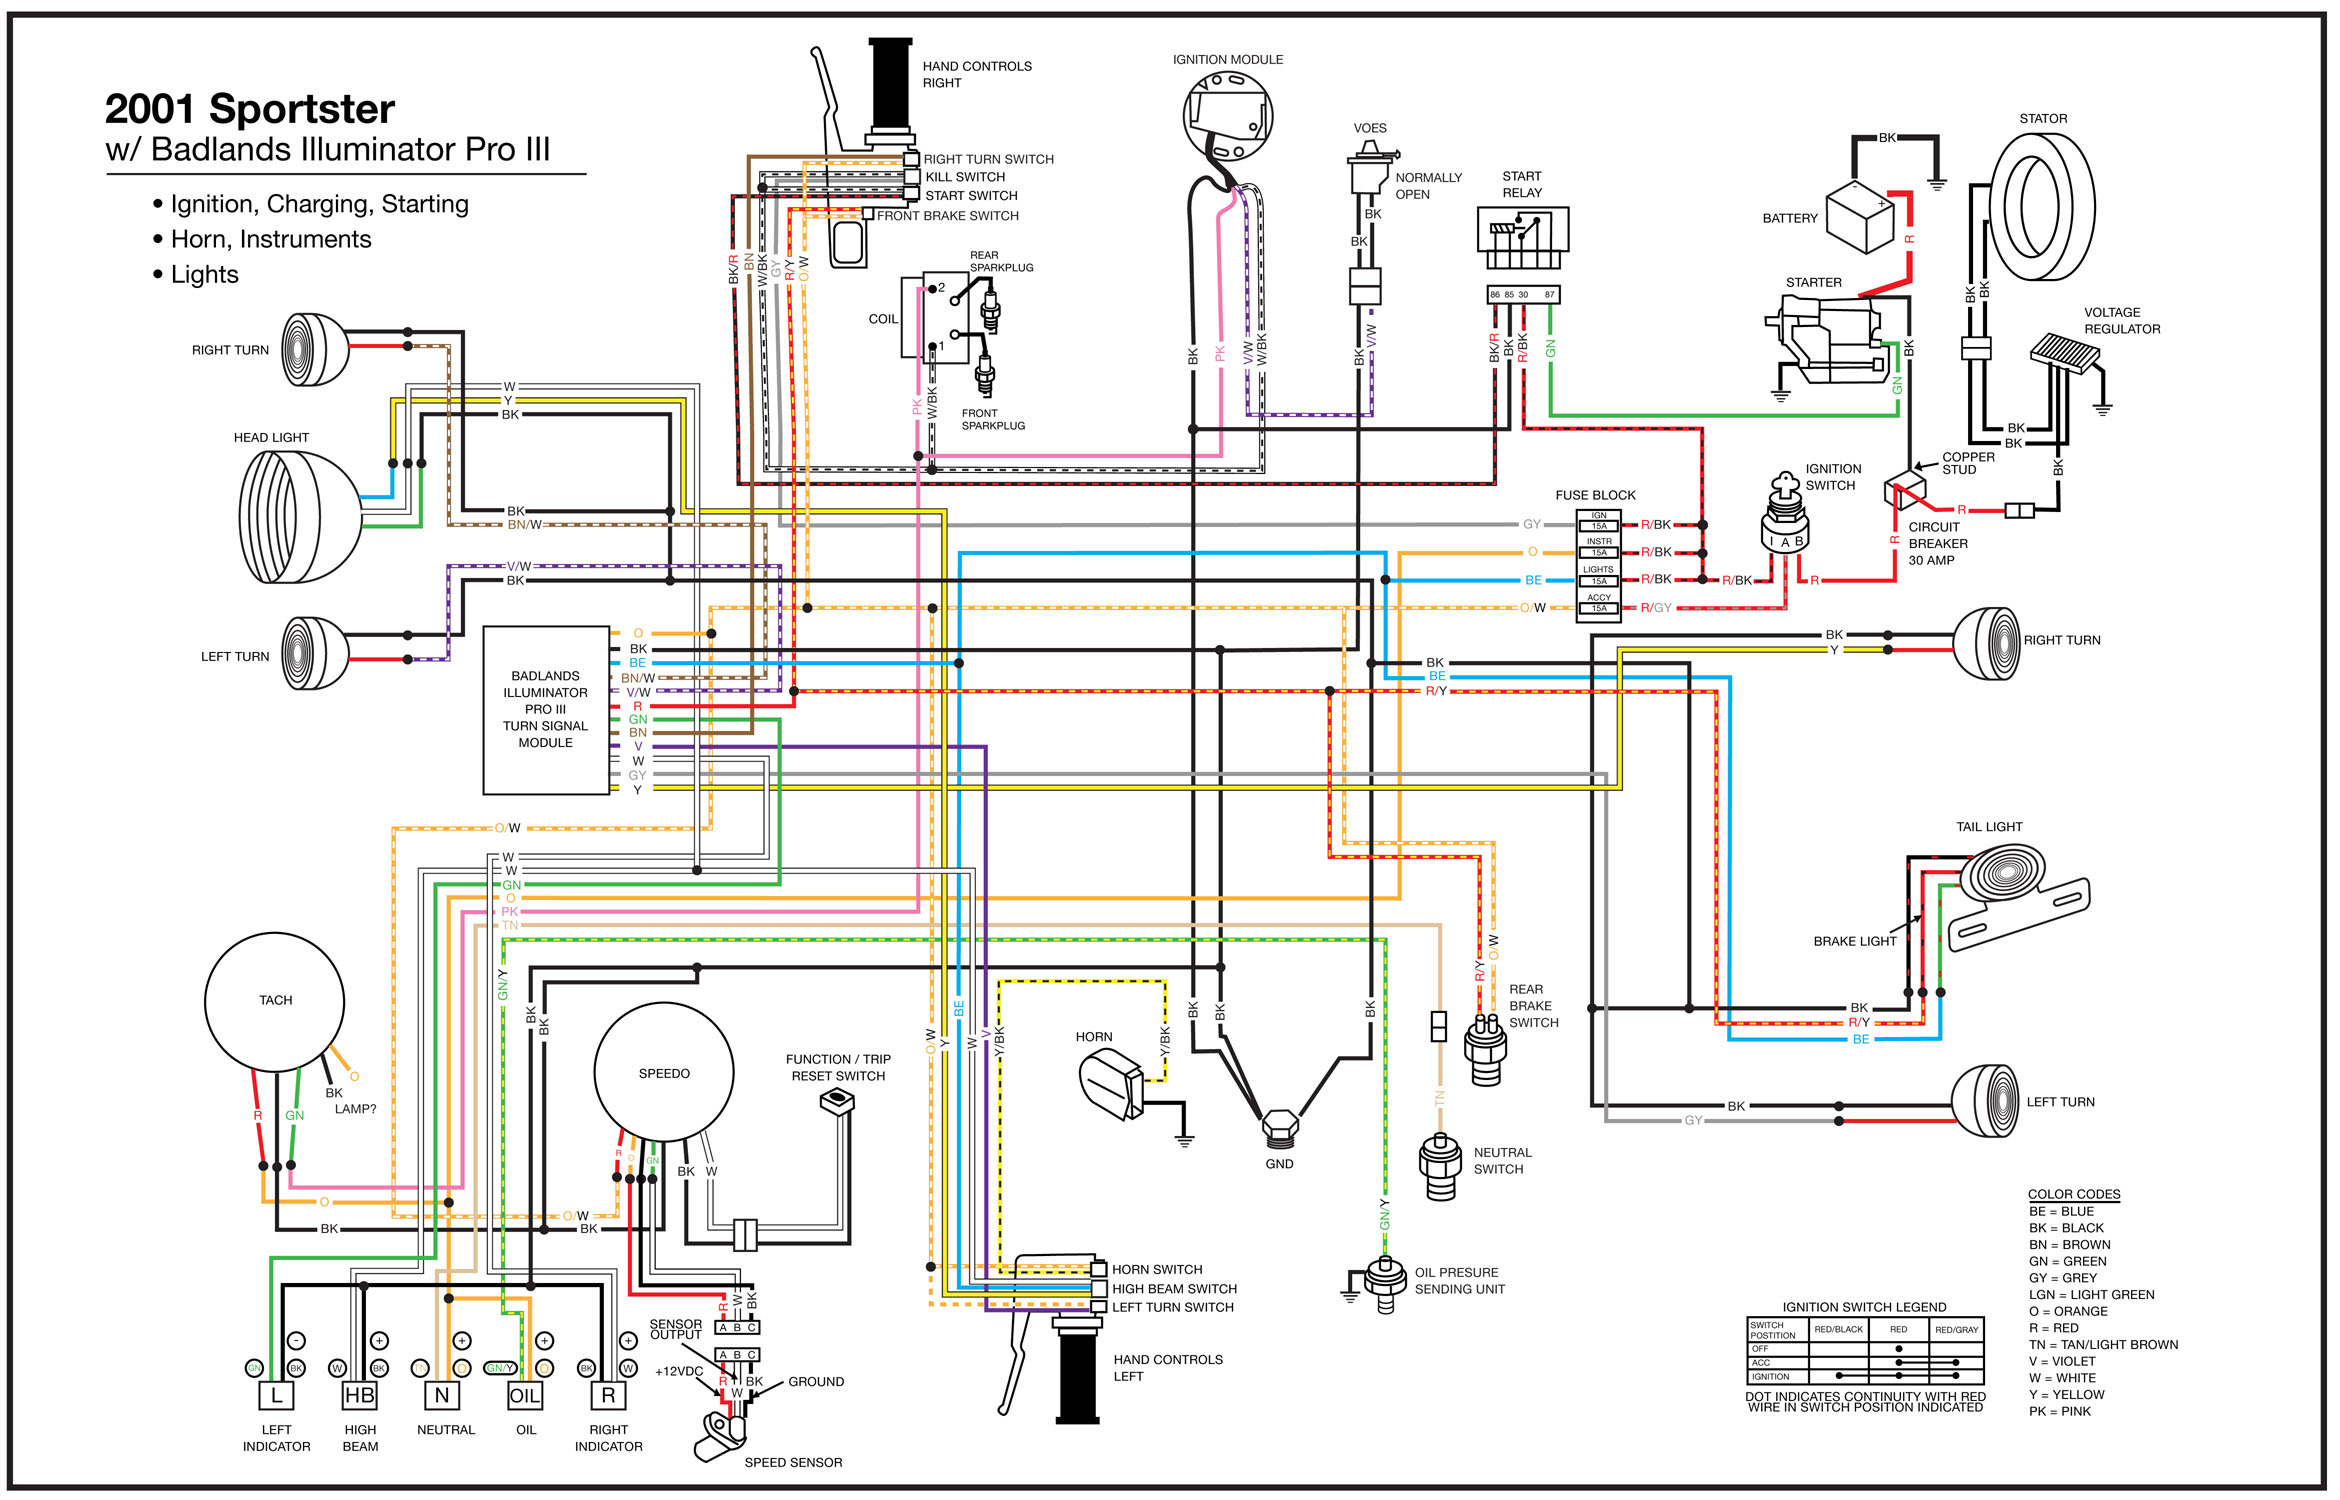 Sportster Badlands_Wiring_Diagram wiring diagram for coil 1200 harley davidson readingrat net  at mr168.co